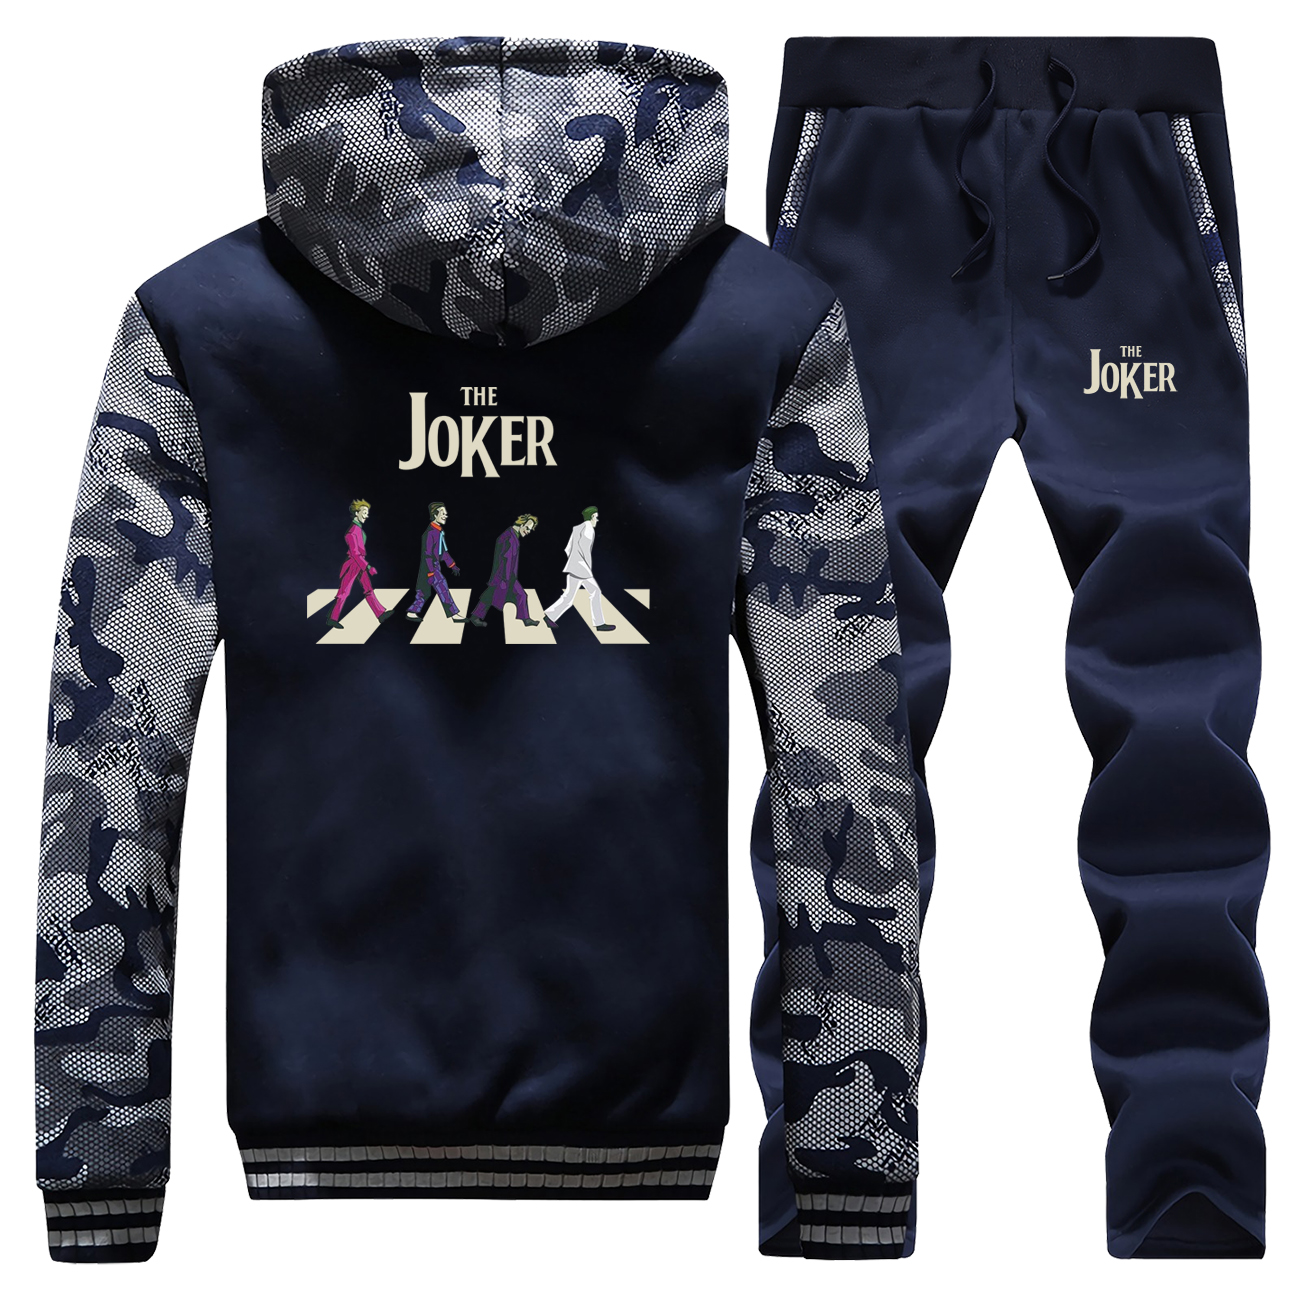 The Joker Male Set Funny Print 2019 Winter Jackets Set Men Thick Camo Hoodies Warm Fleece Men's Joker Sets Fashion Sweatsuit